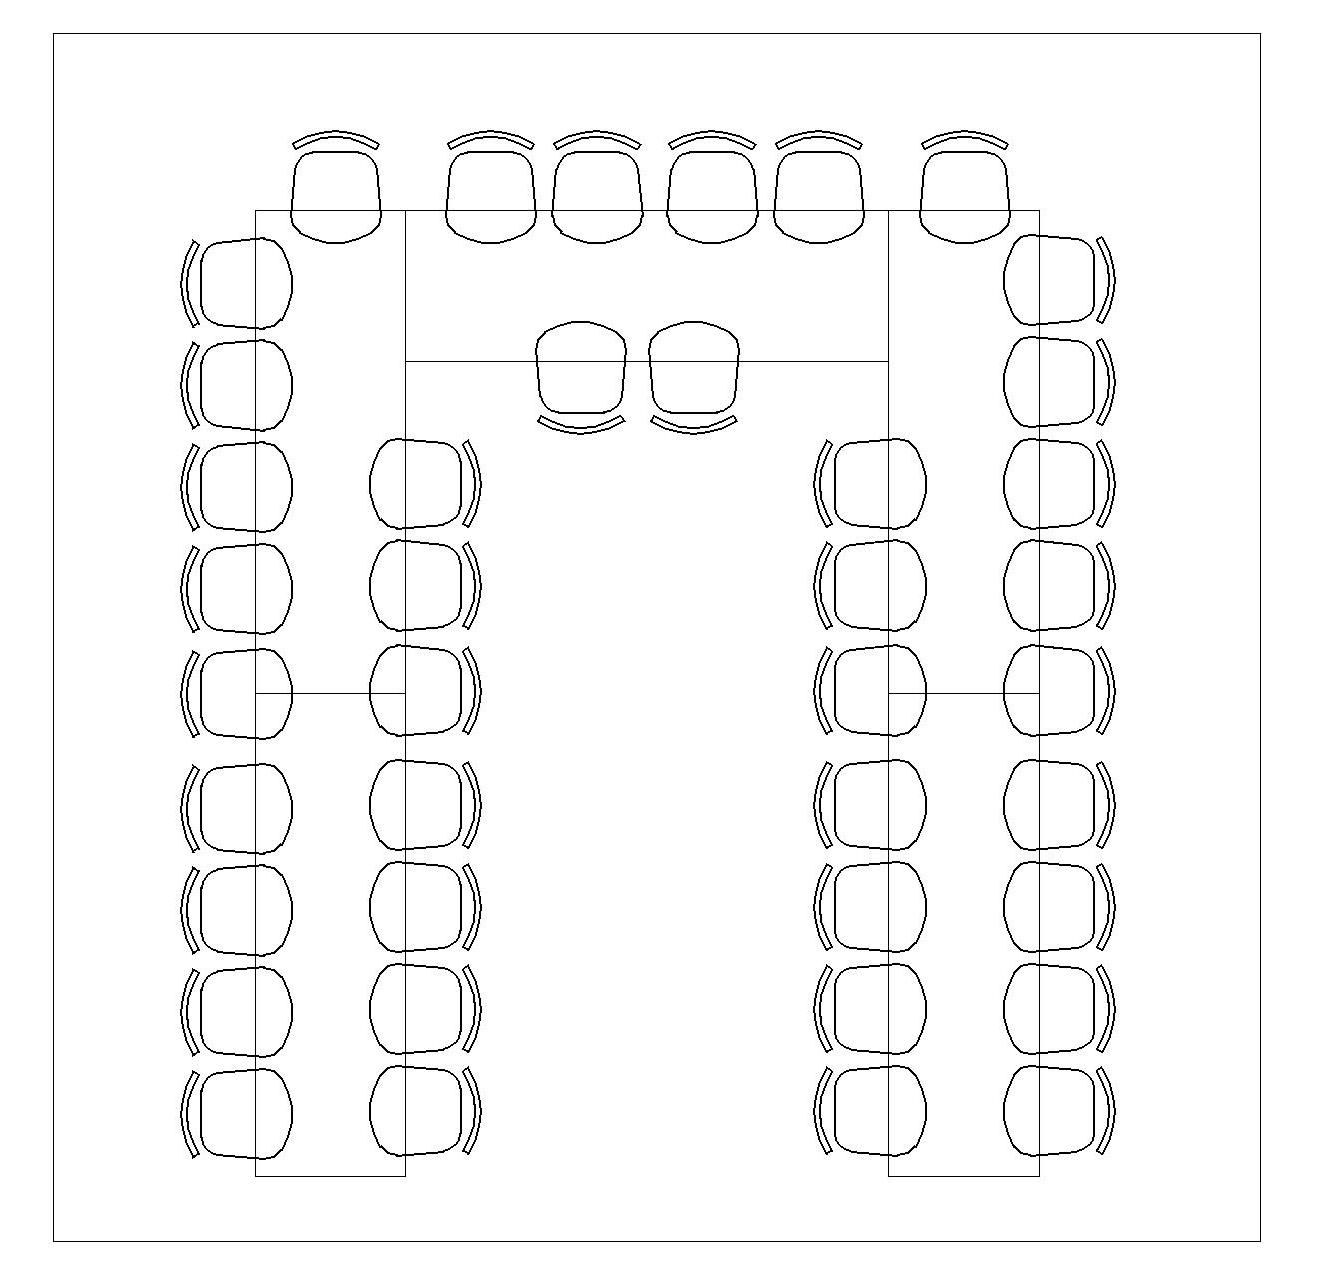 U Shaped Seating Chart 36 Seats